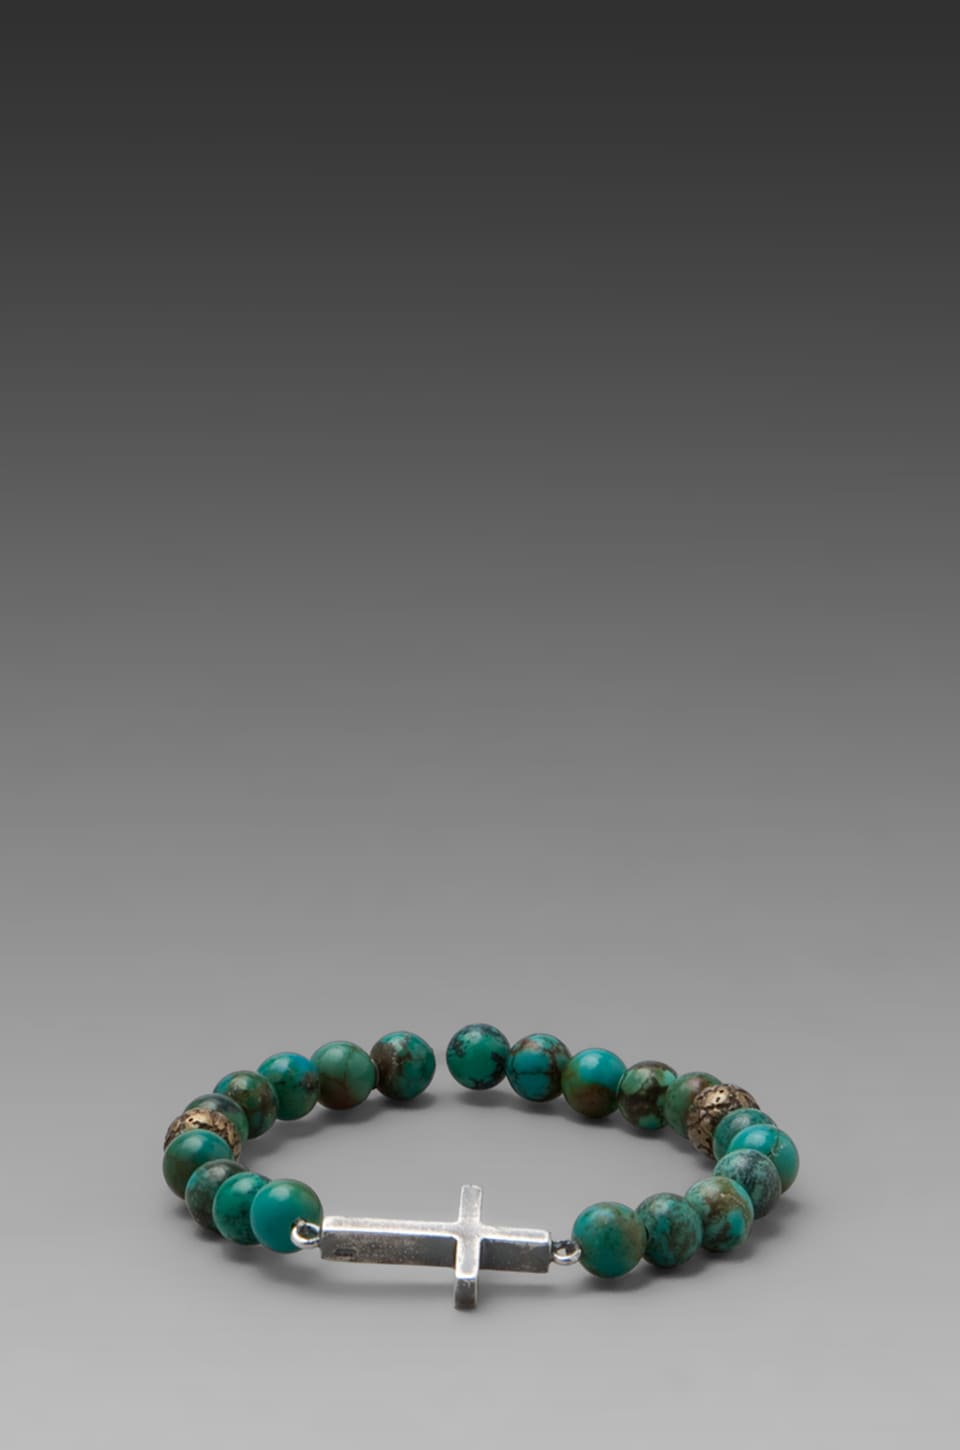 M.Cohen Beaded Sterling Sliver Cross Bracelet en Turquoise